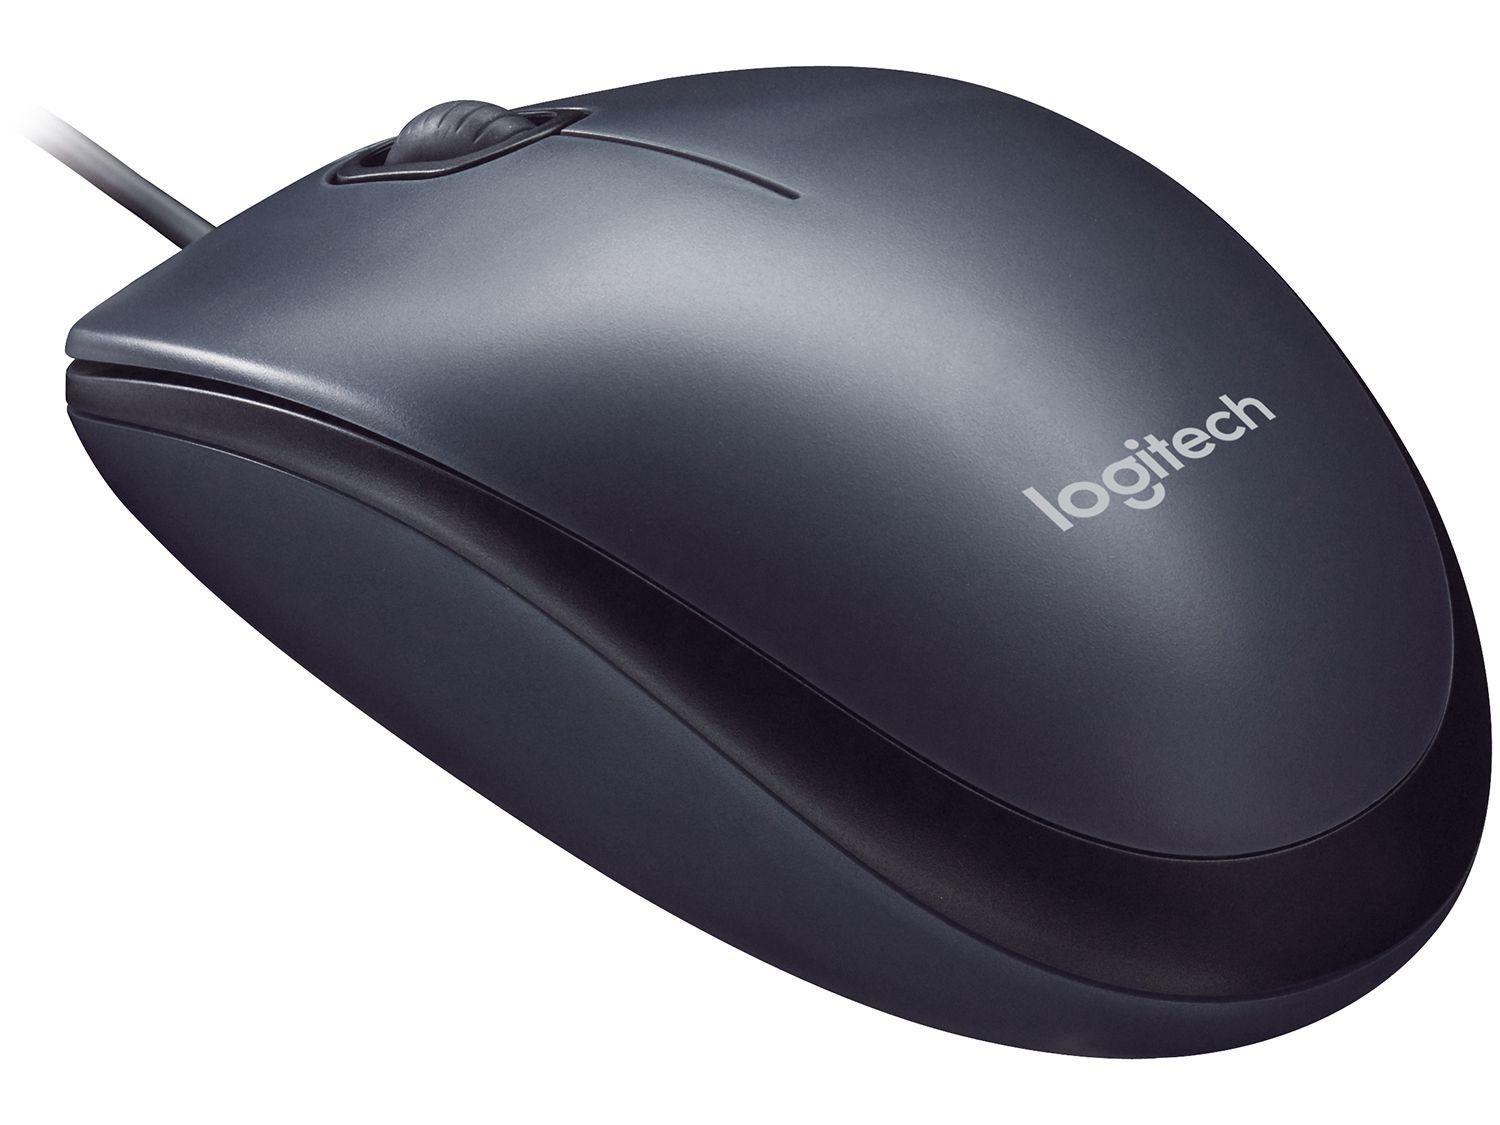 LOGITECH N231 MOUSE WINDOWS XP DRIVER